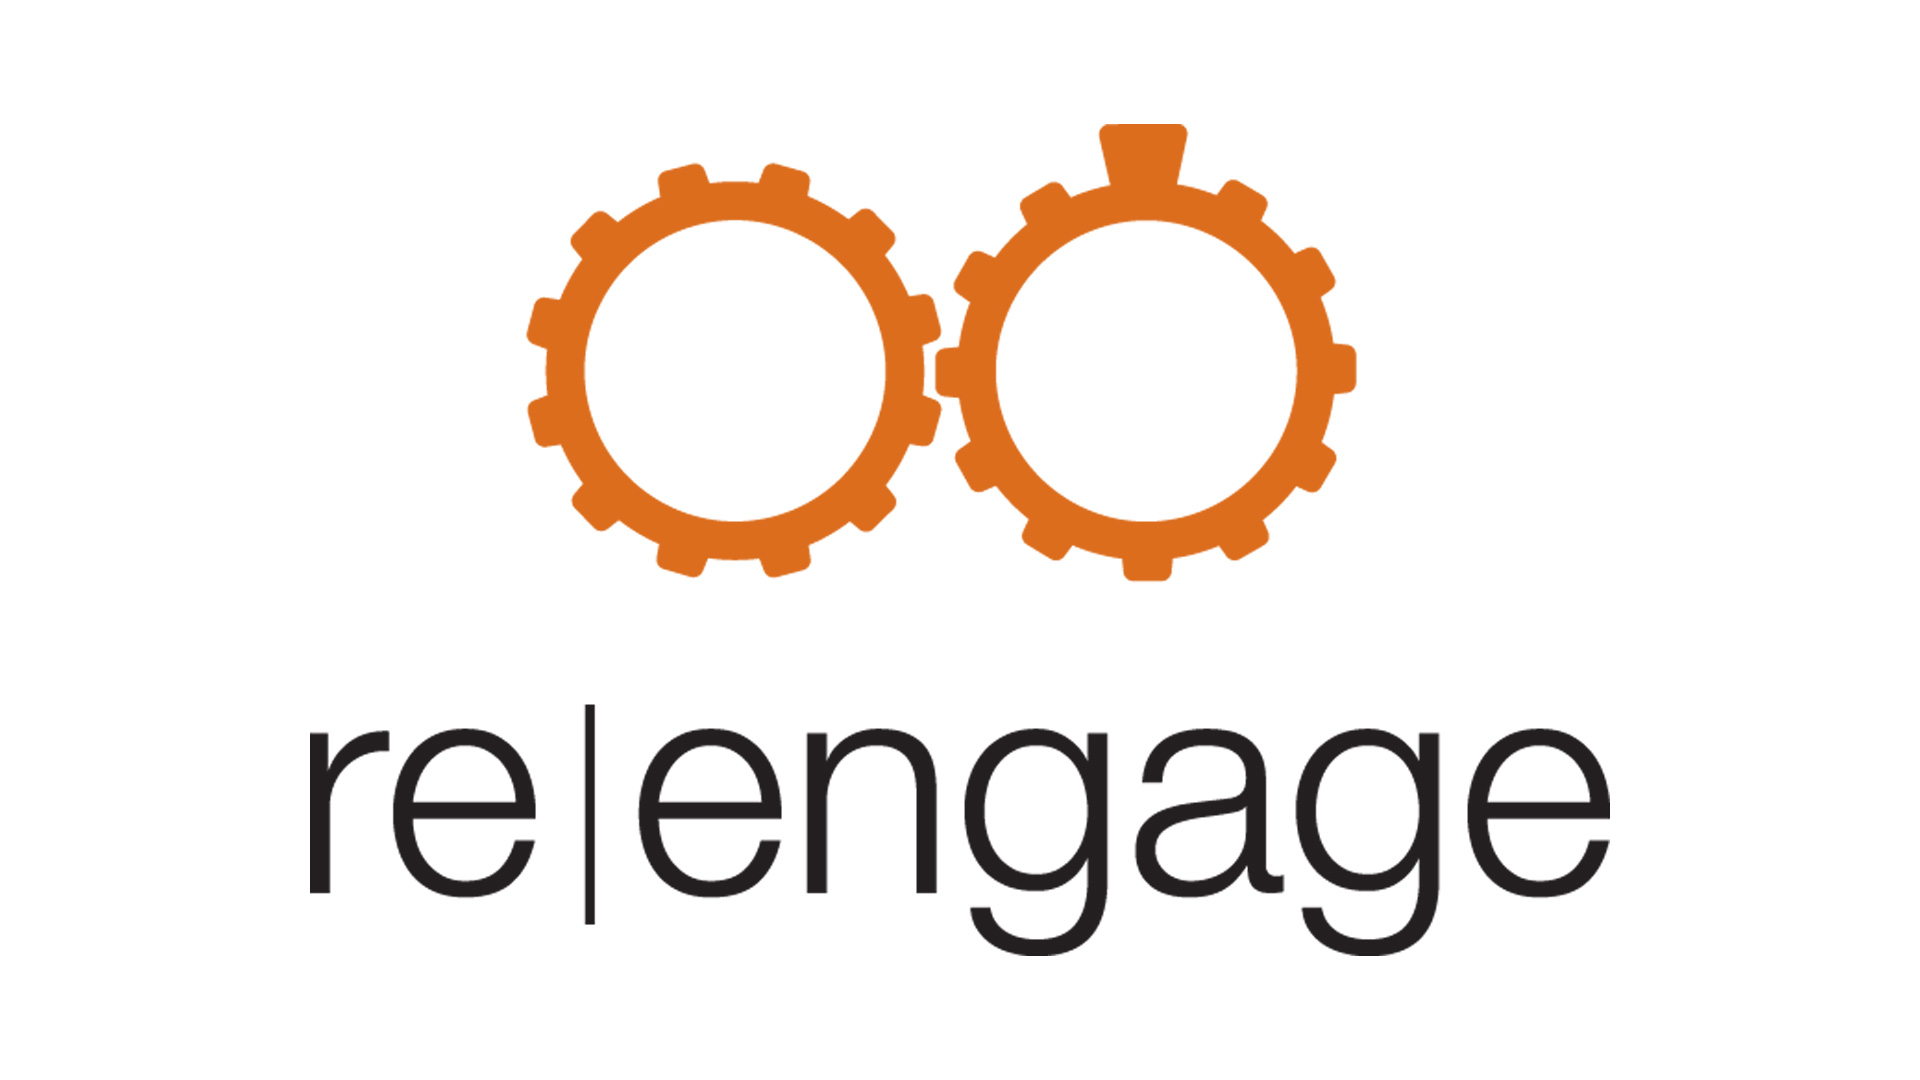 Re|engage - Our Re:engage ministry is a way to reignite, resurrect, or restore your marriage. Frisco West and McKinney groups are winding down until Spring, but Frisco East groups will continue meeting year round.Frisco East Campus: Thursdays, 6:30 - 8:15 PMFrisco West Campus: Mondays, 6:30 - 8:15 PMMcKinney Campus: Tuesdays, 6:30 - 8:15 PM